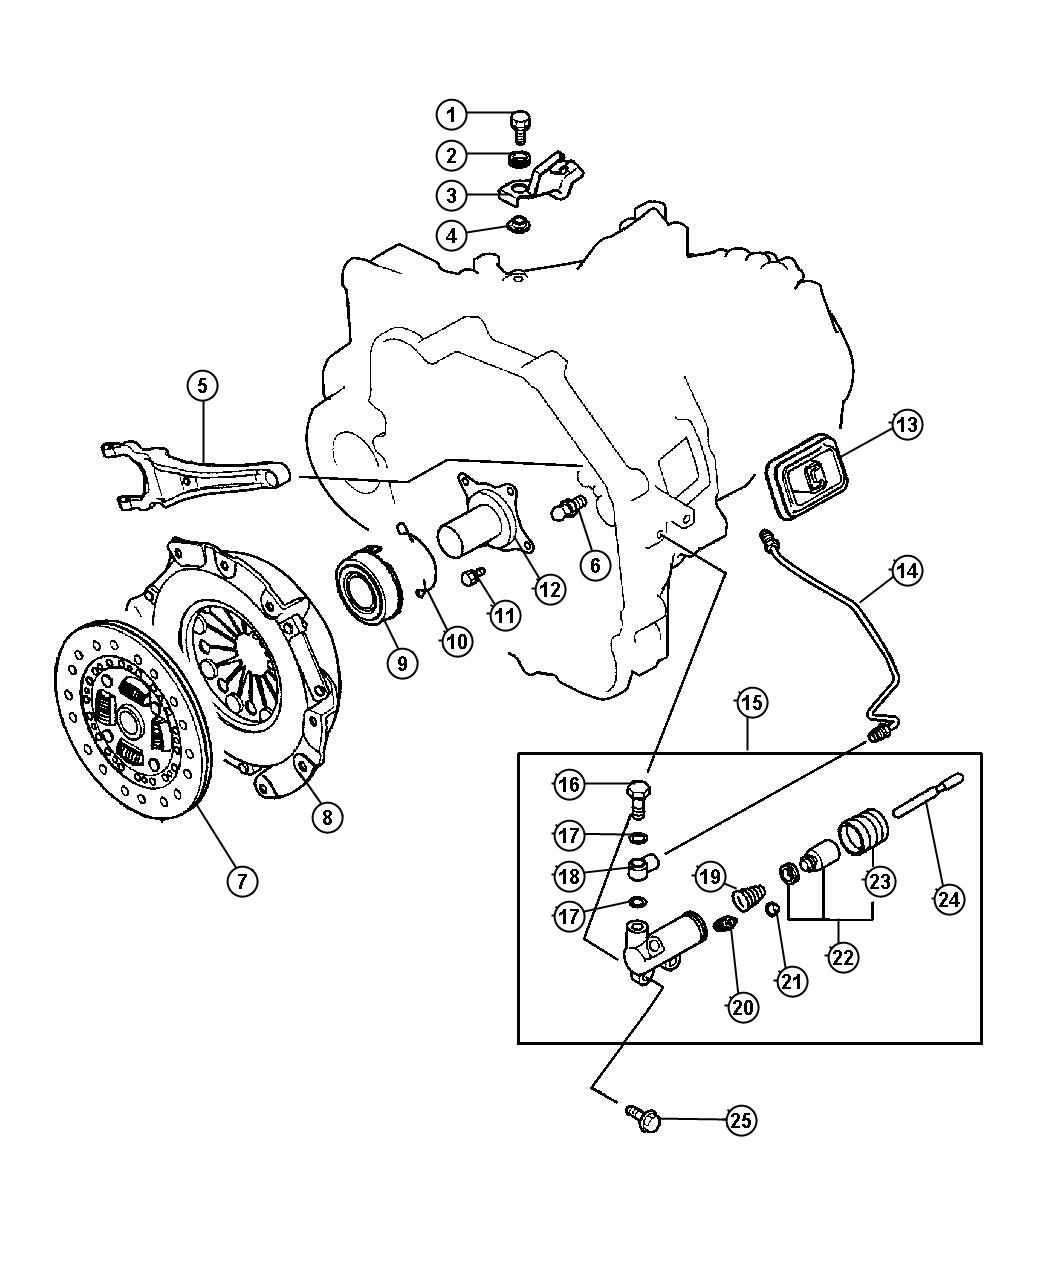 Jeep 4 Cylinder Engines Clutch Diagrams